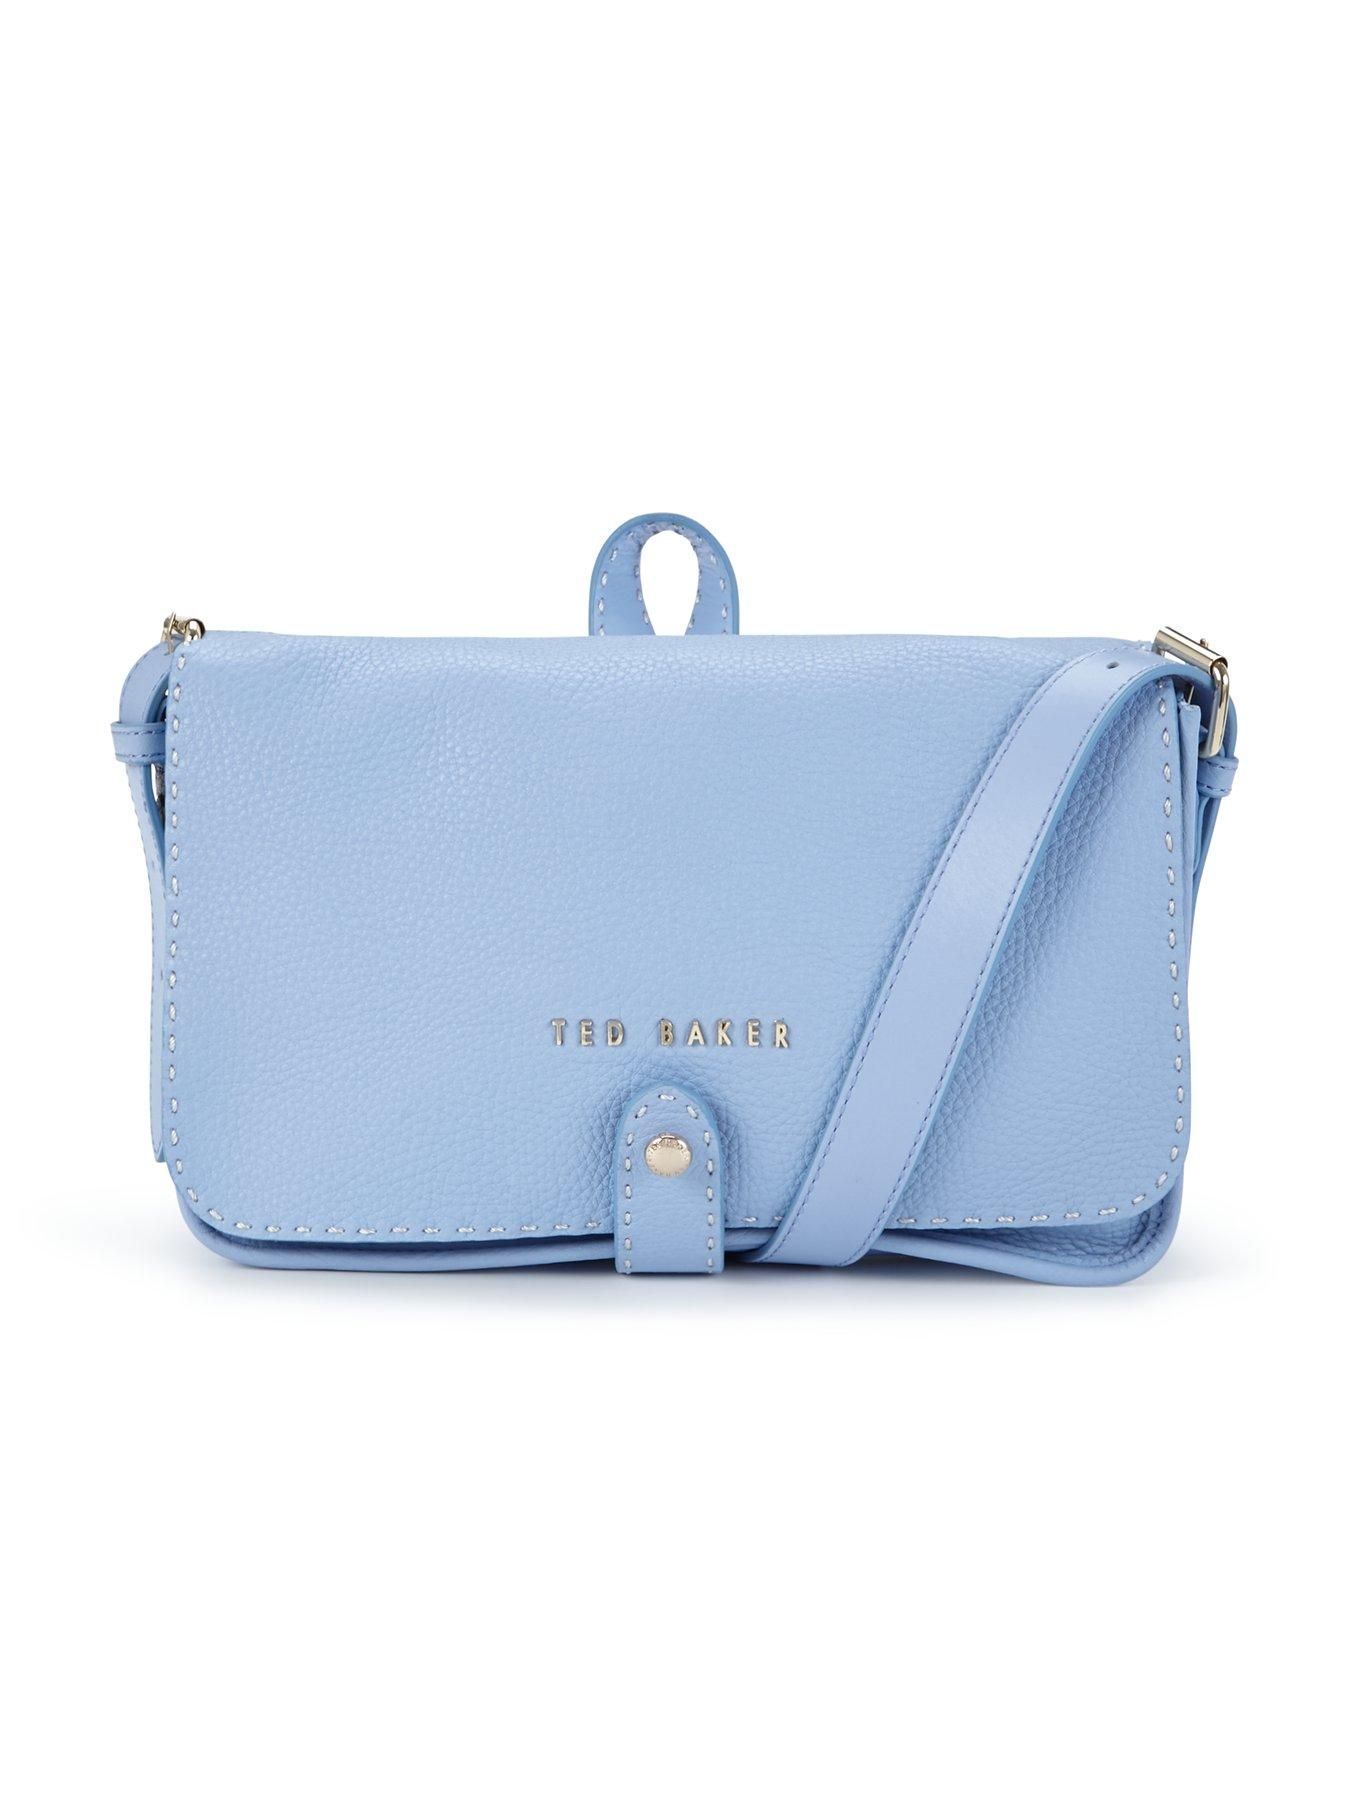 Textured Leather Cross Body Purse Bag - Pale blue Ted Baker IrLlE